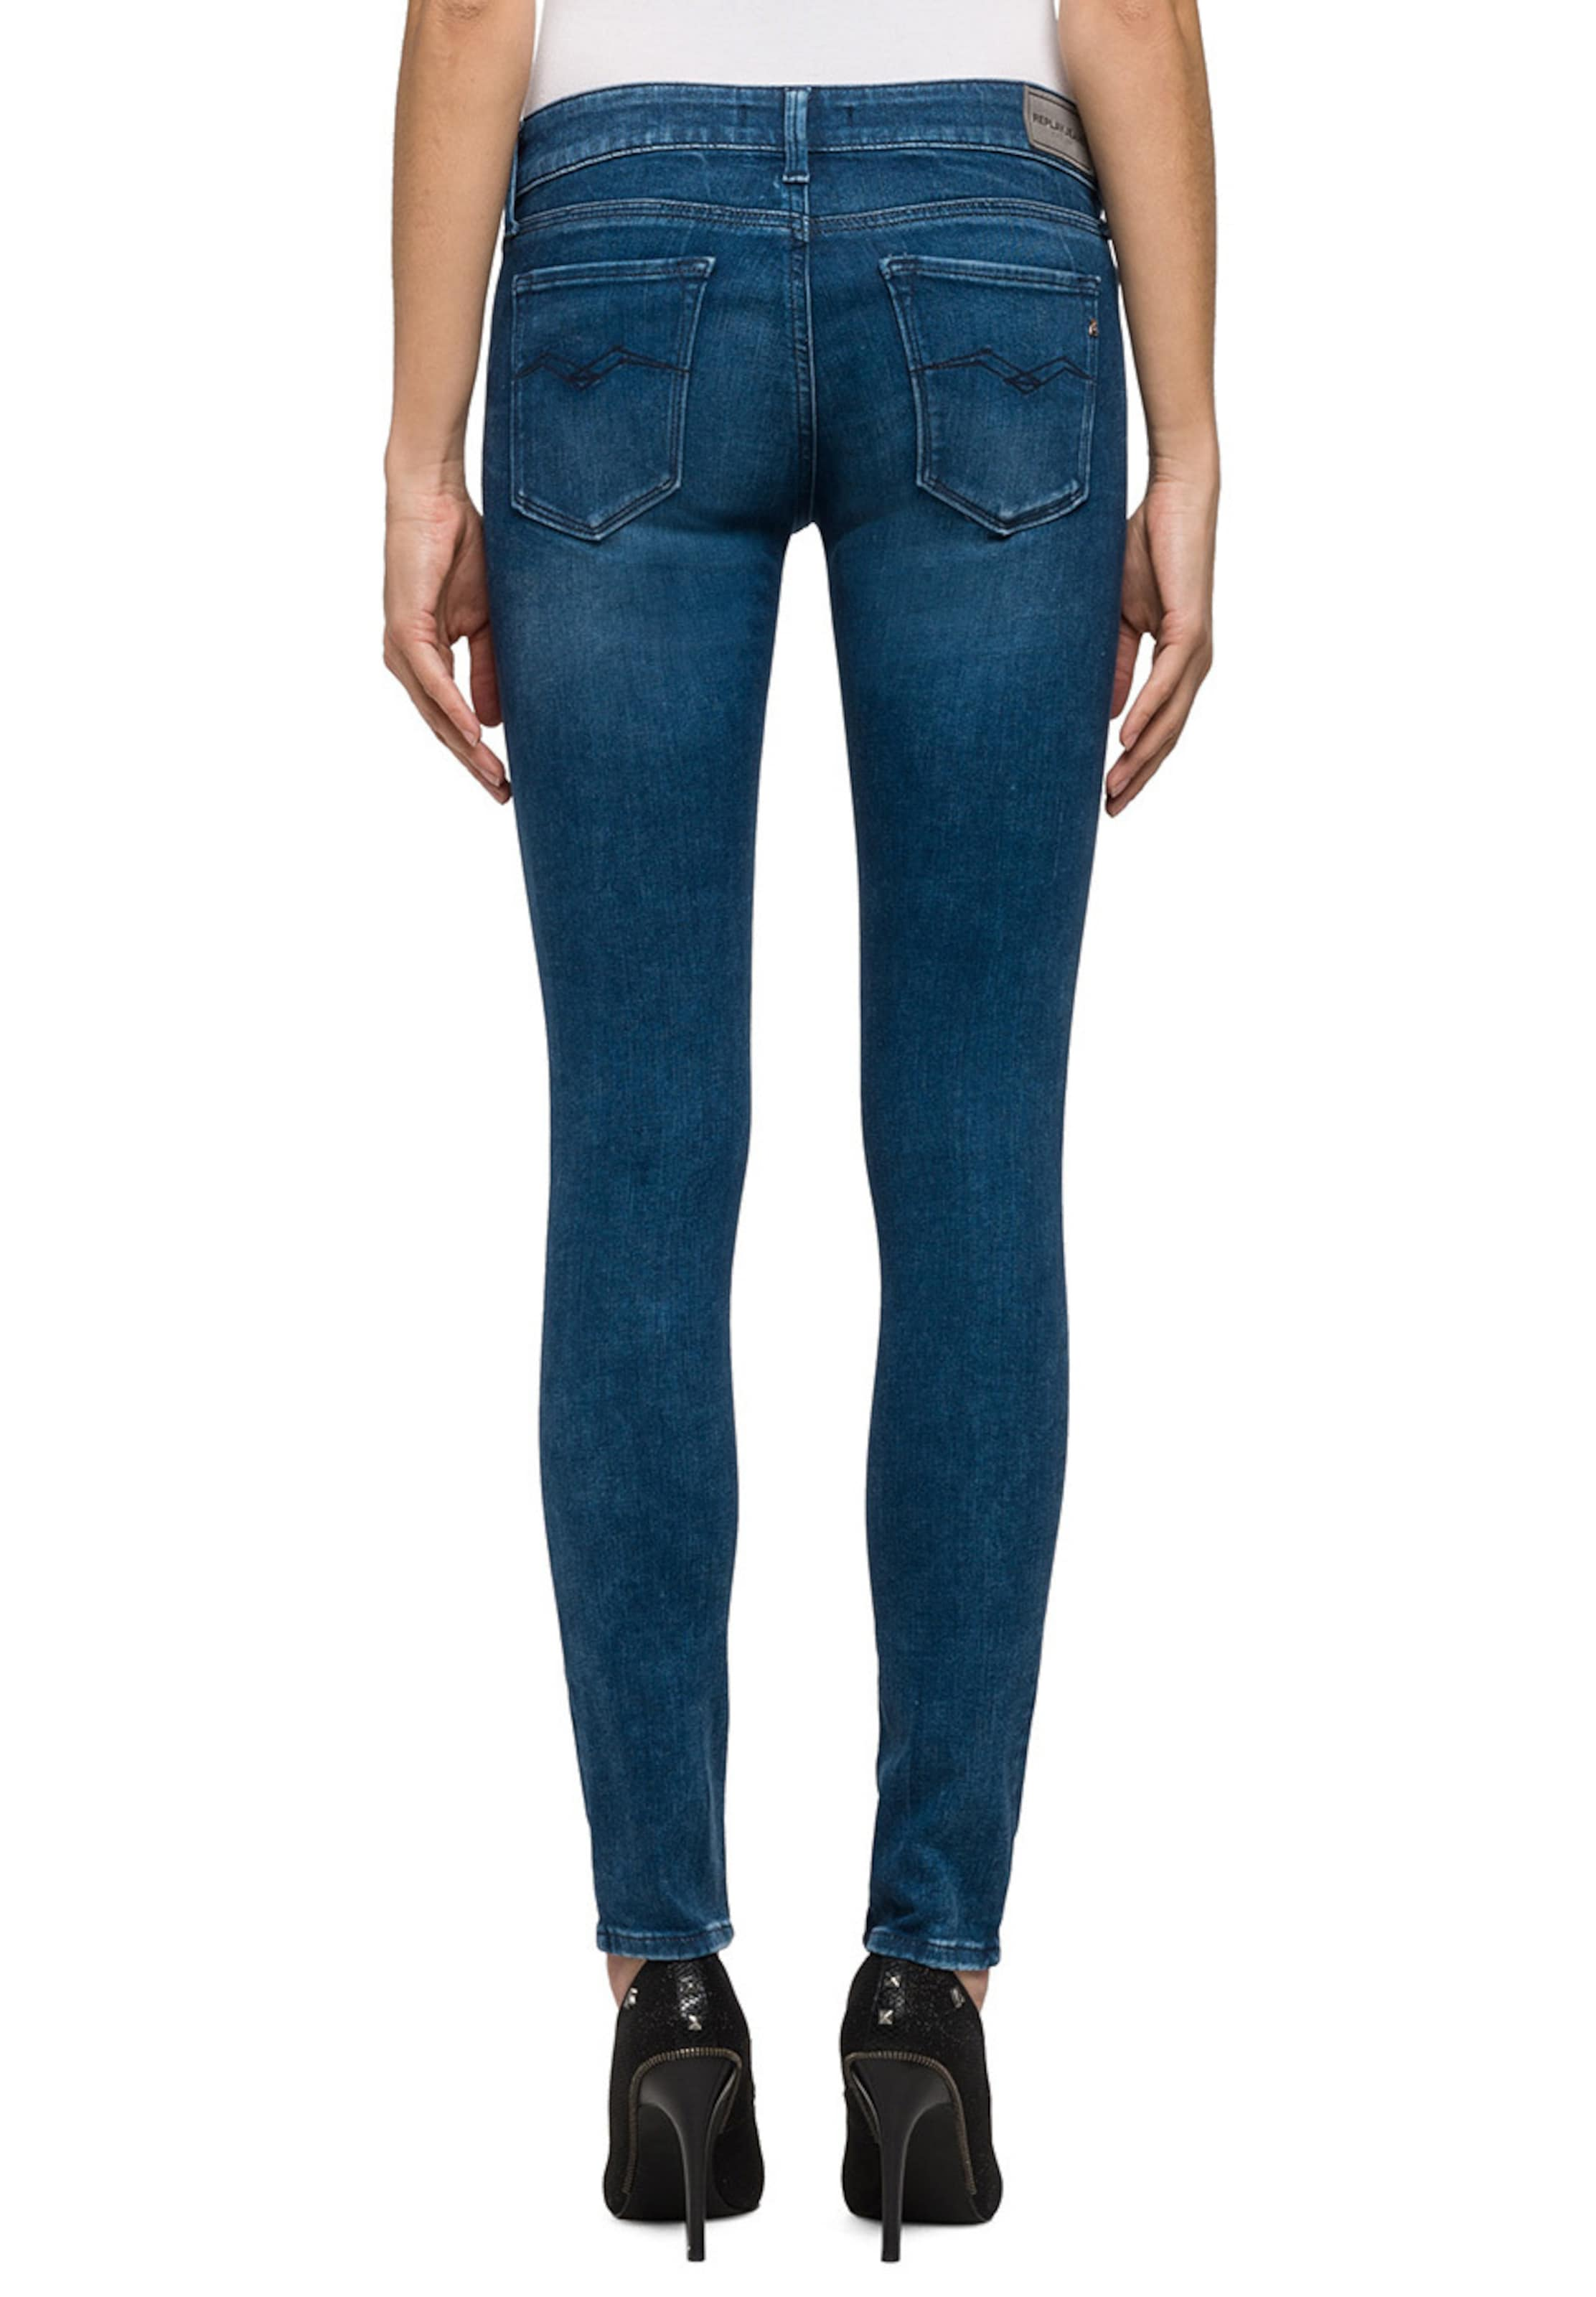 REPLAY Damen Jeans LUZ dark blue blau | 08054959845009